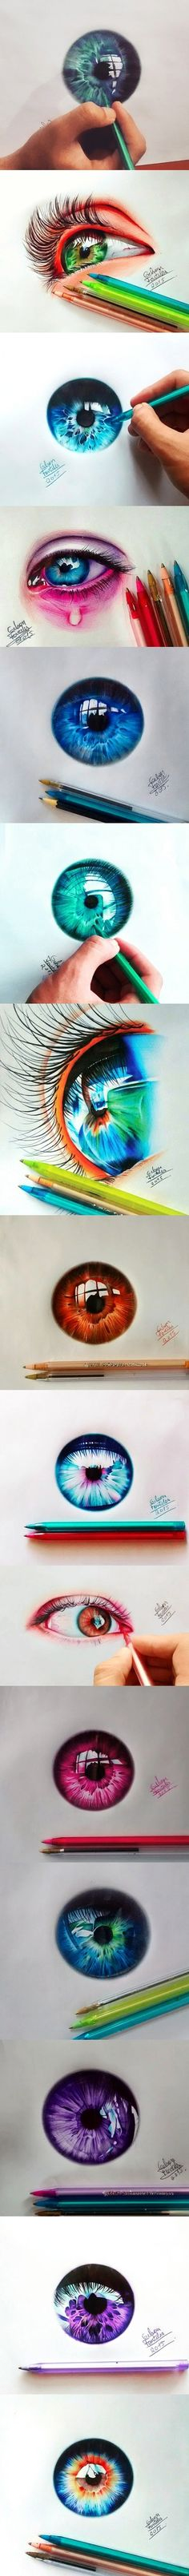 Realistic eye drawings